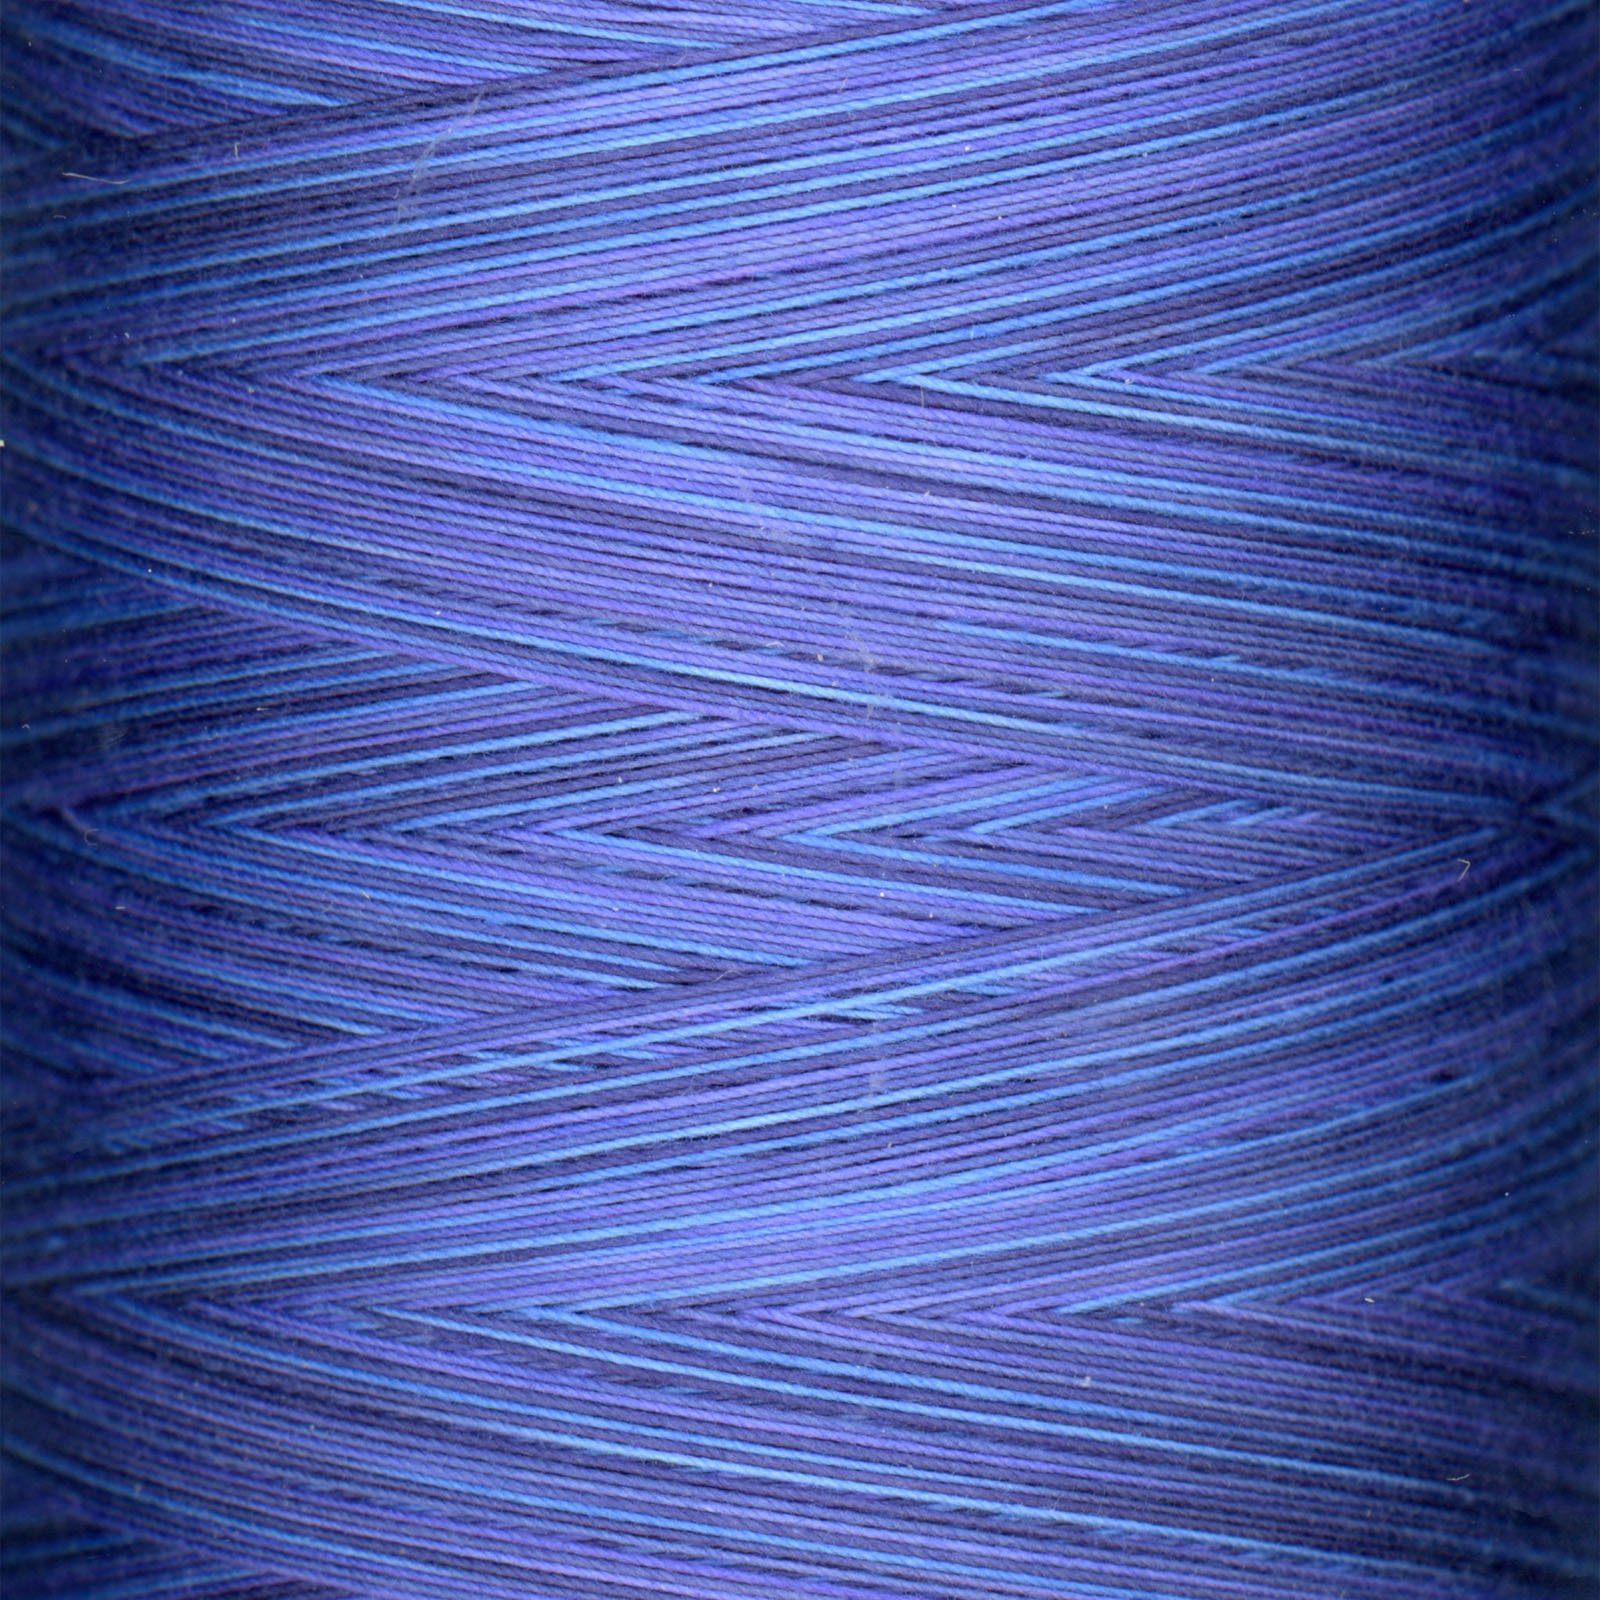 King Tut Variegated Thread #903